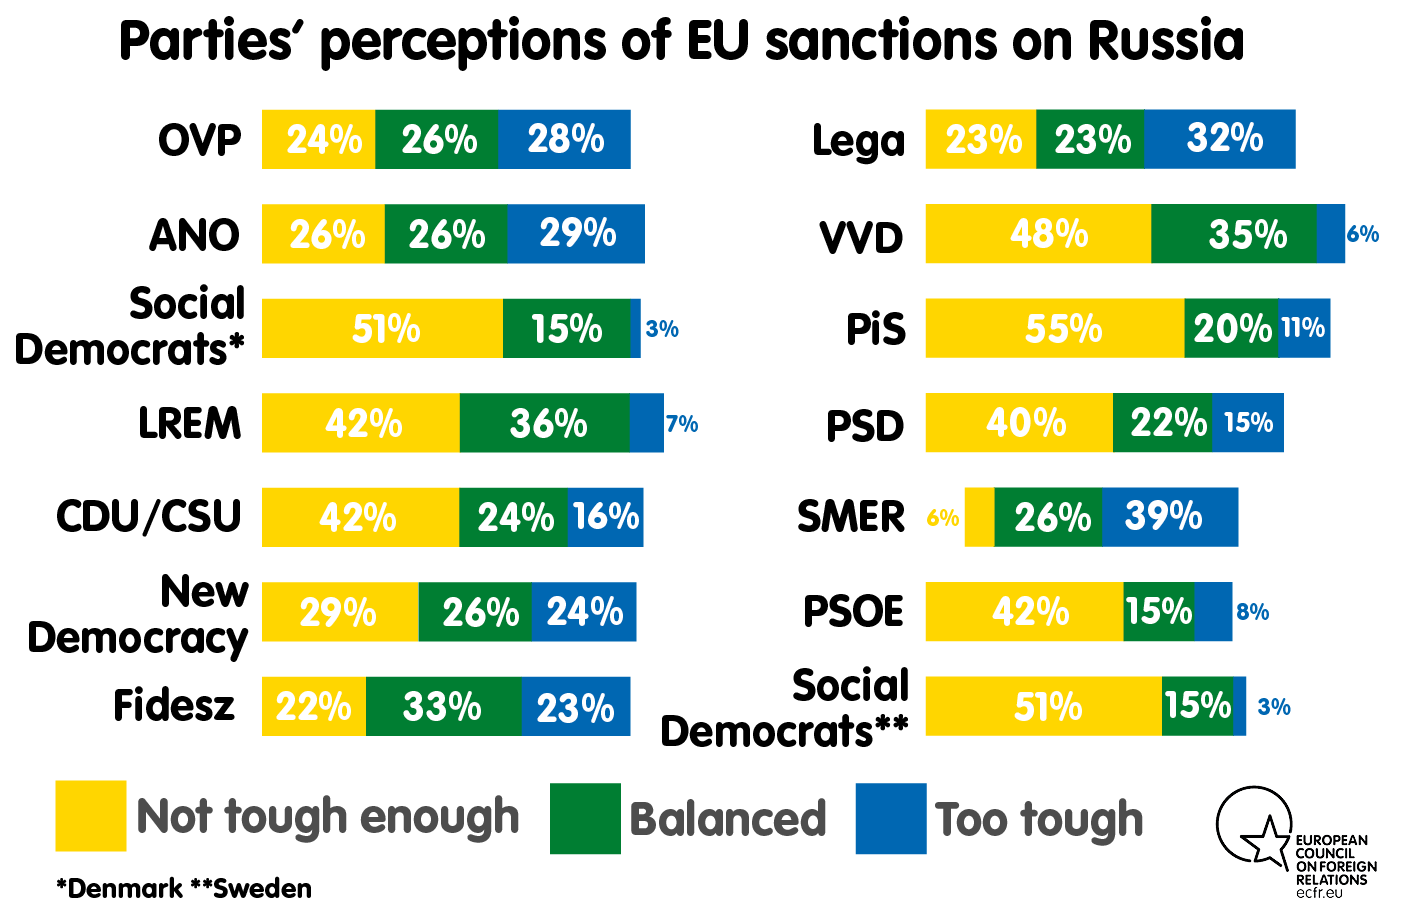 Parties' perceptions of EU sanctions on Russia